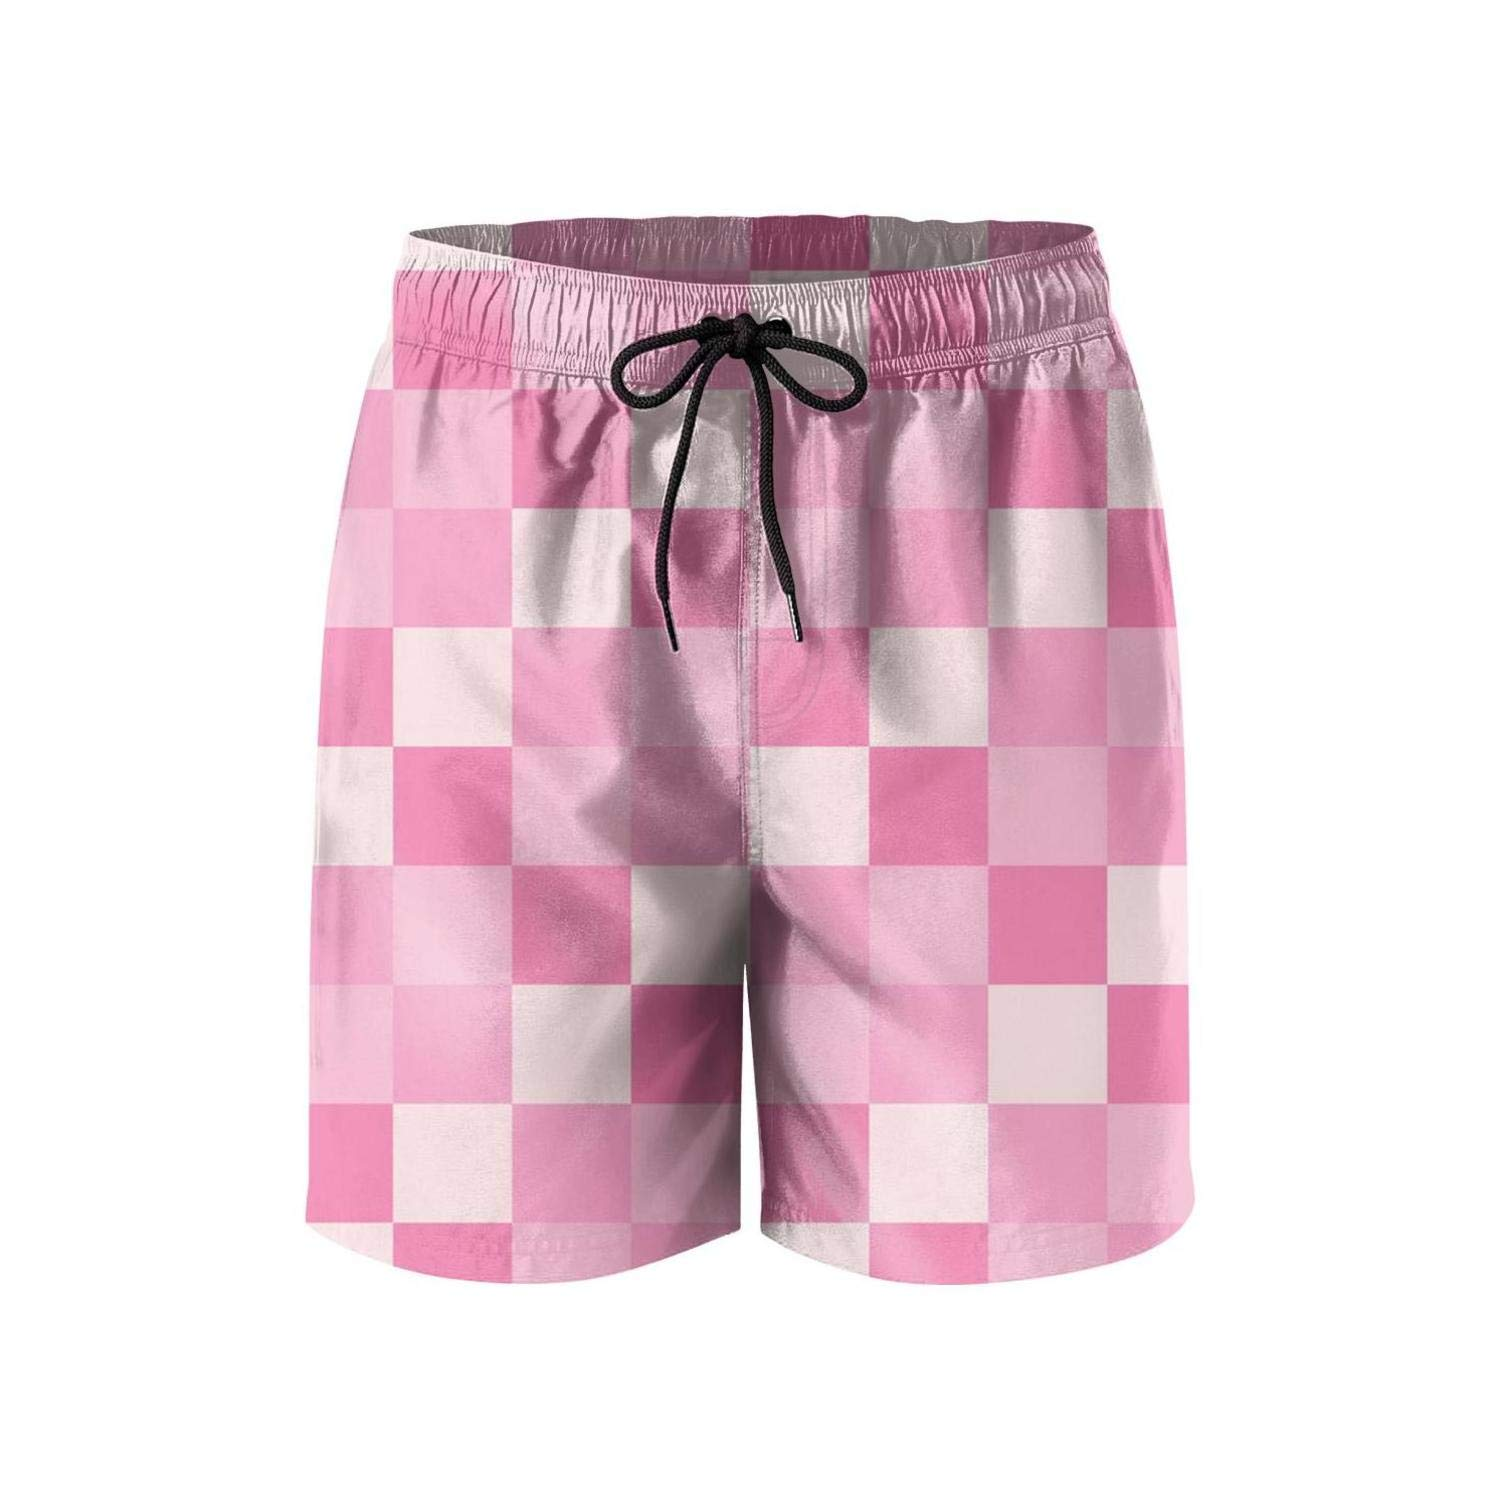 Camouflage Mens Swim Trunks Stretch Cool Simple-Geometric-Background-with-Triangles-Checkered